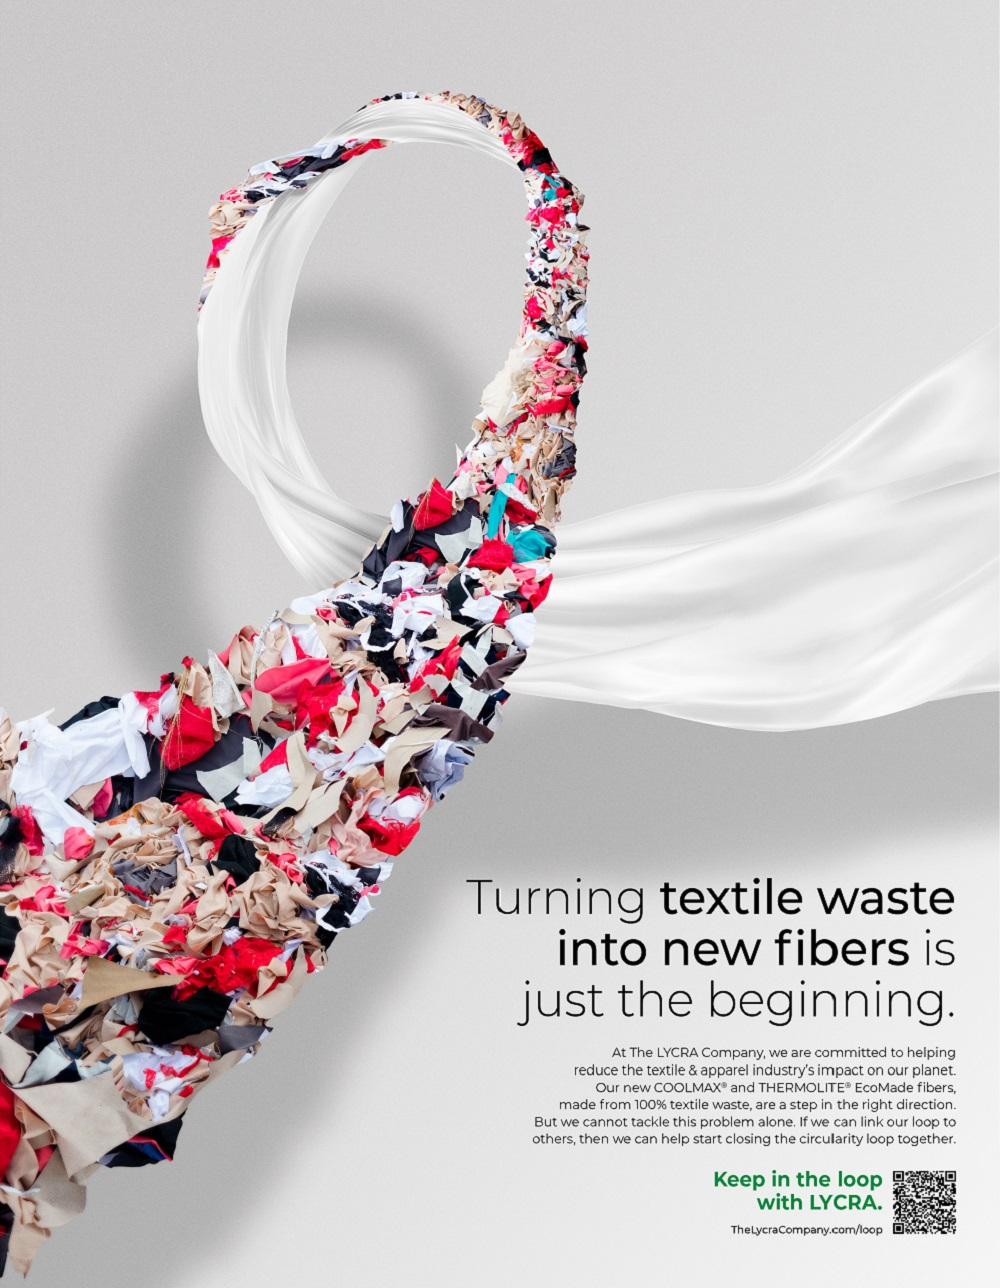 The Lycra Company has introduced a new marketing campaign aimed at advancing discussions around circularity in textiles.